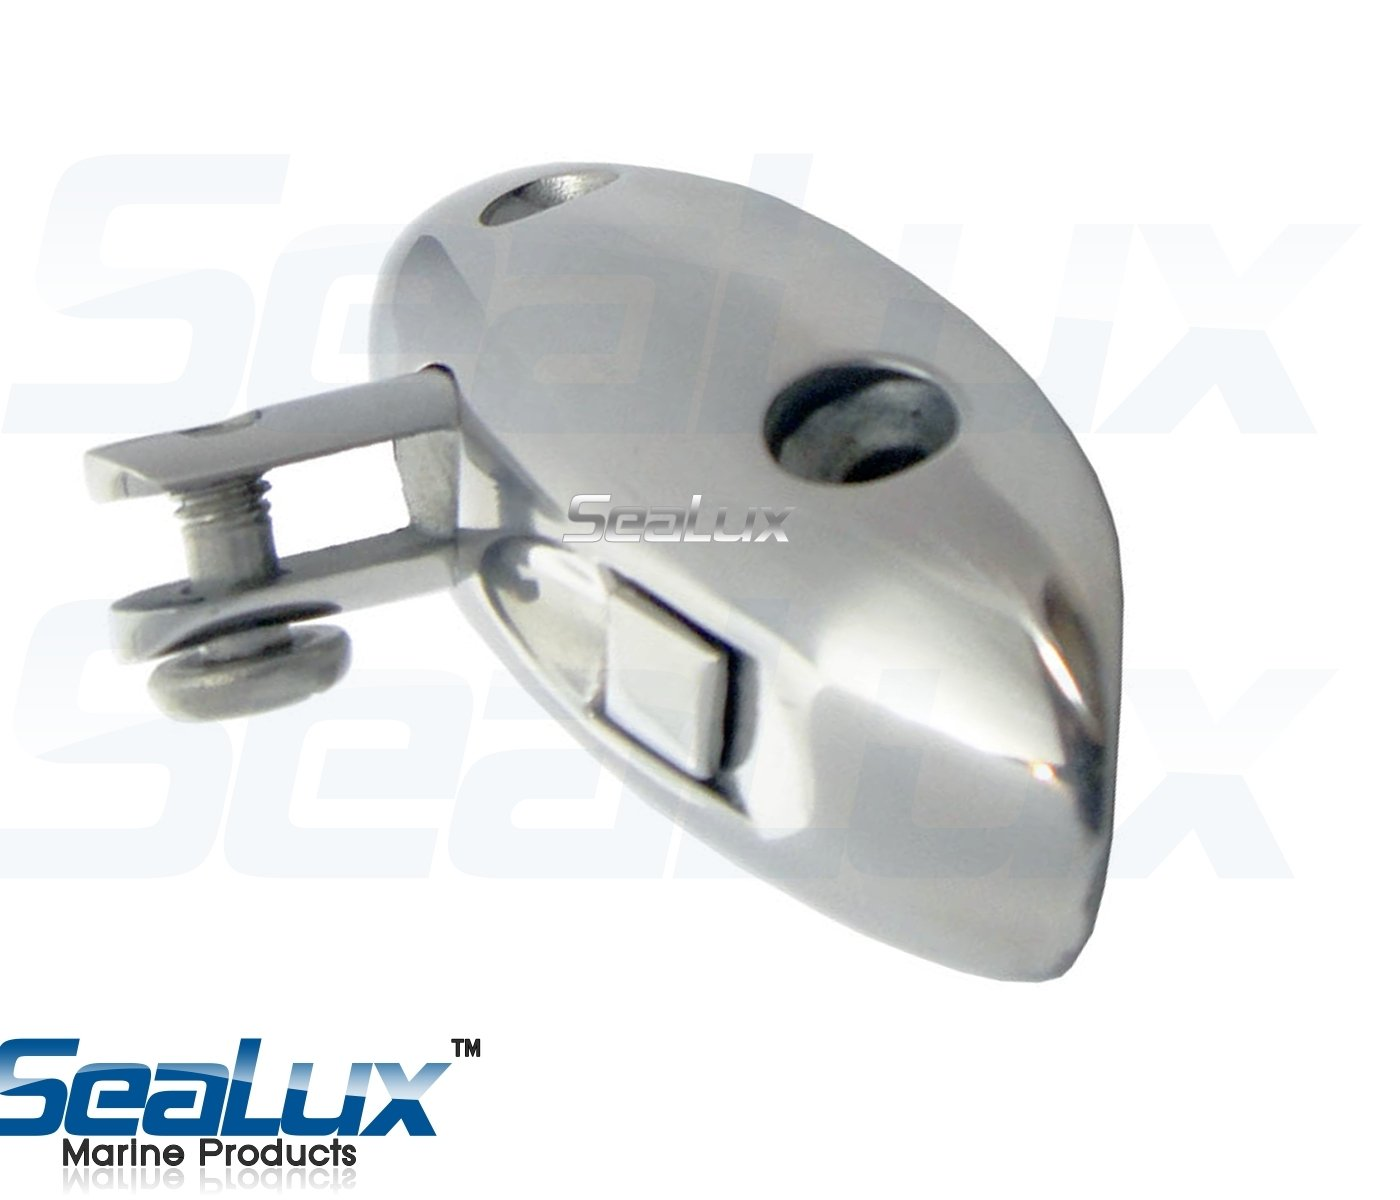 SeaLux Oval Curve Windshield (Side) Mount 90° Concave Base Saddle mount 316 Stainless Steel Swivel Quick release Hinge Marine Bimini Top Fitting- Accon Marine